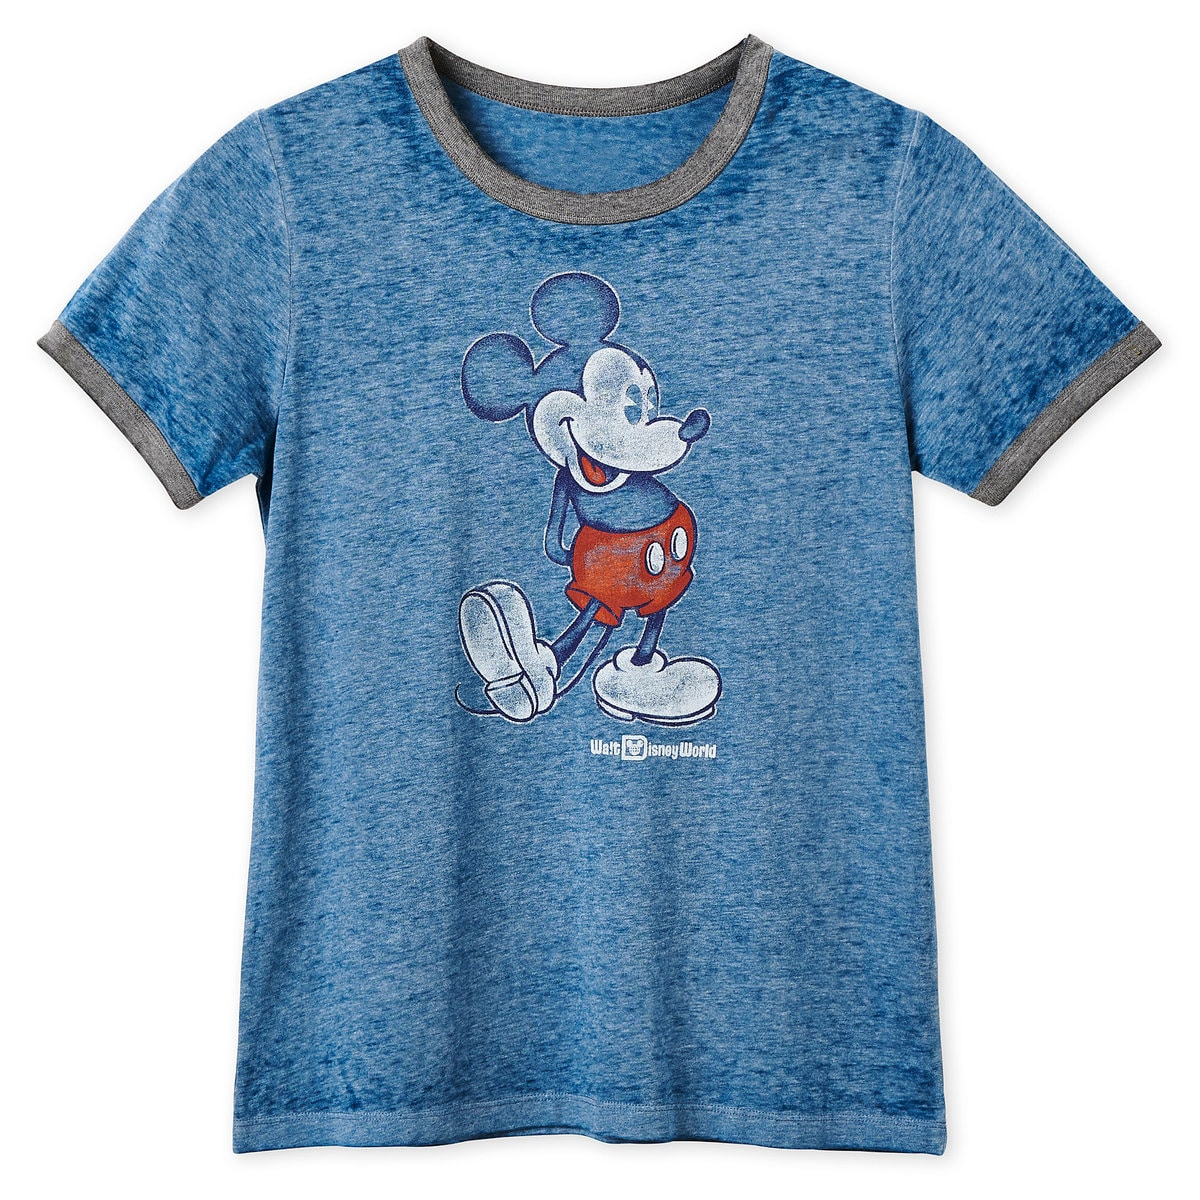 44db4fe58 Product Image of Mickey Mouse Heathered Ringer T-Shirt for Women - Walt  Disney World